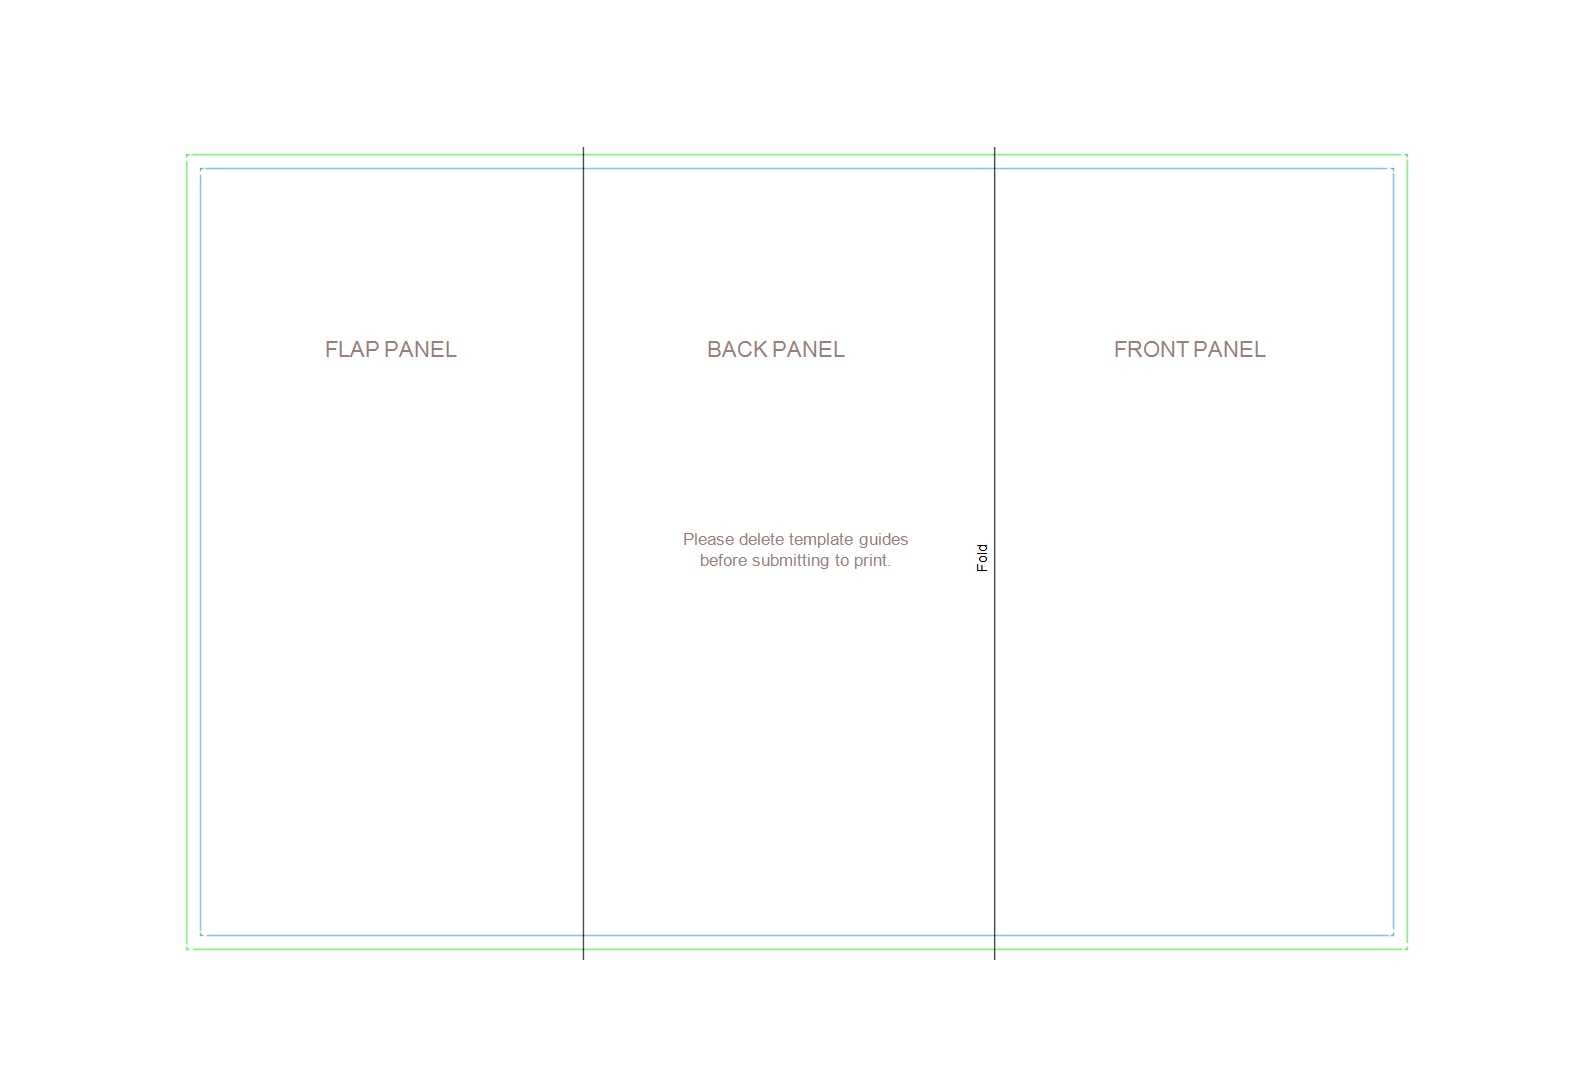 50 Free Pamphlet Templates [Word / Google Docs] ᐅ Templatelab Intended For Brochure Template Google Drive